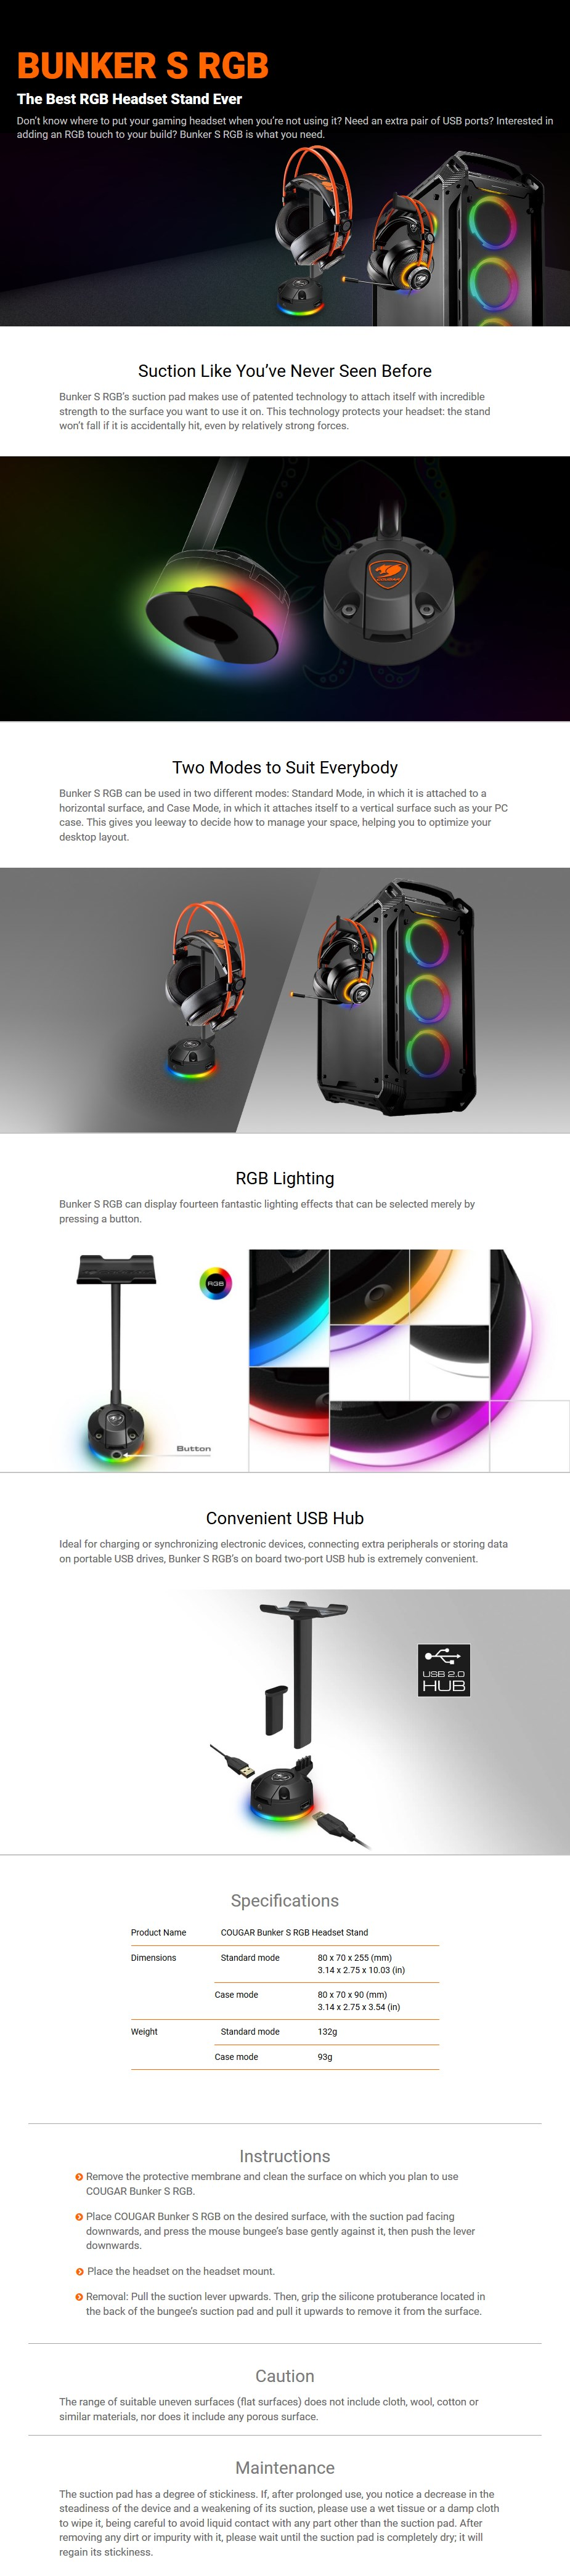 Cougar Bunker S RGB Headset Stand - Desktop Overview 1